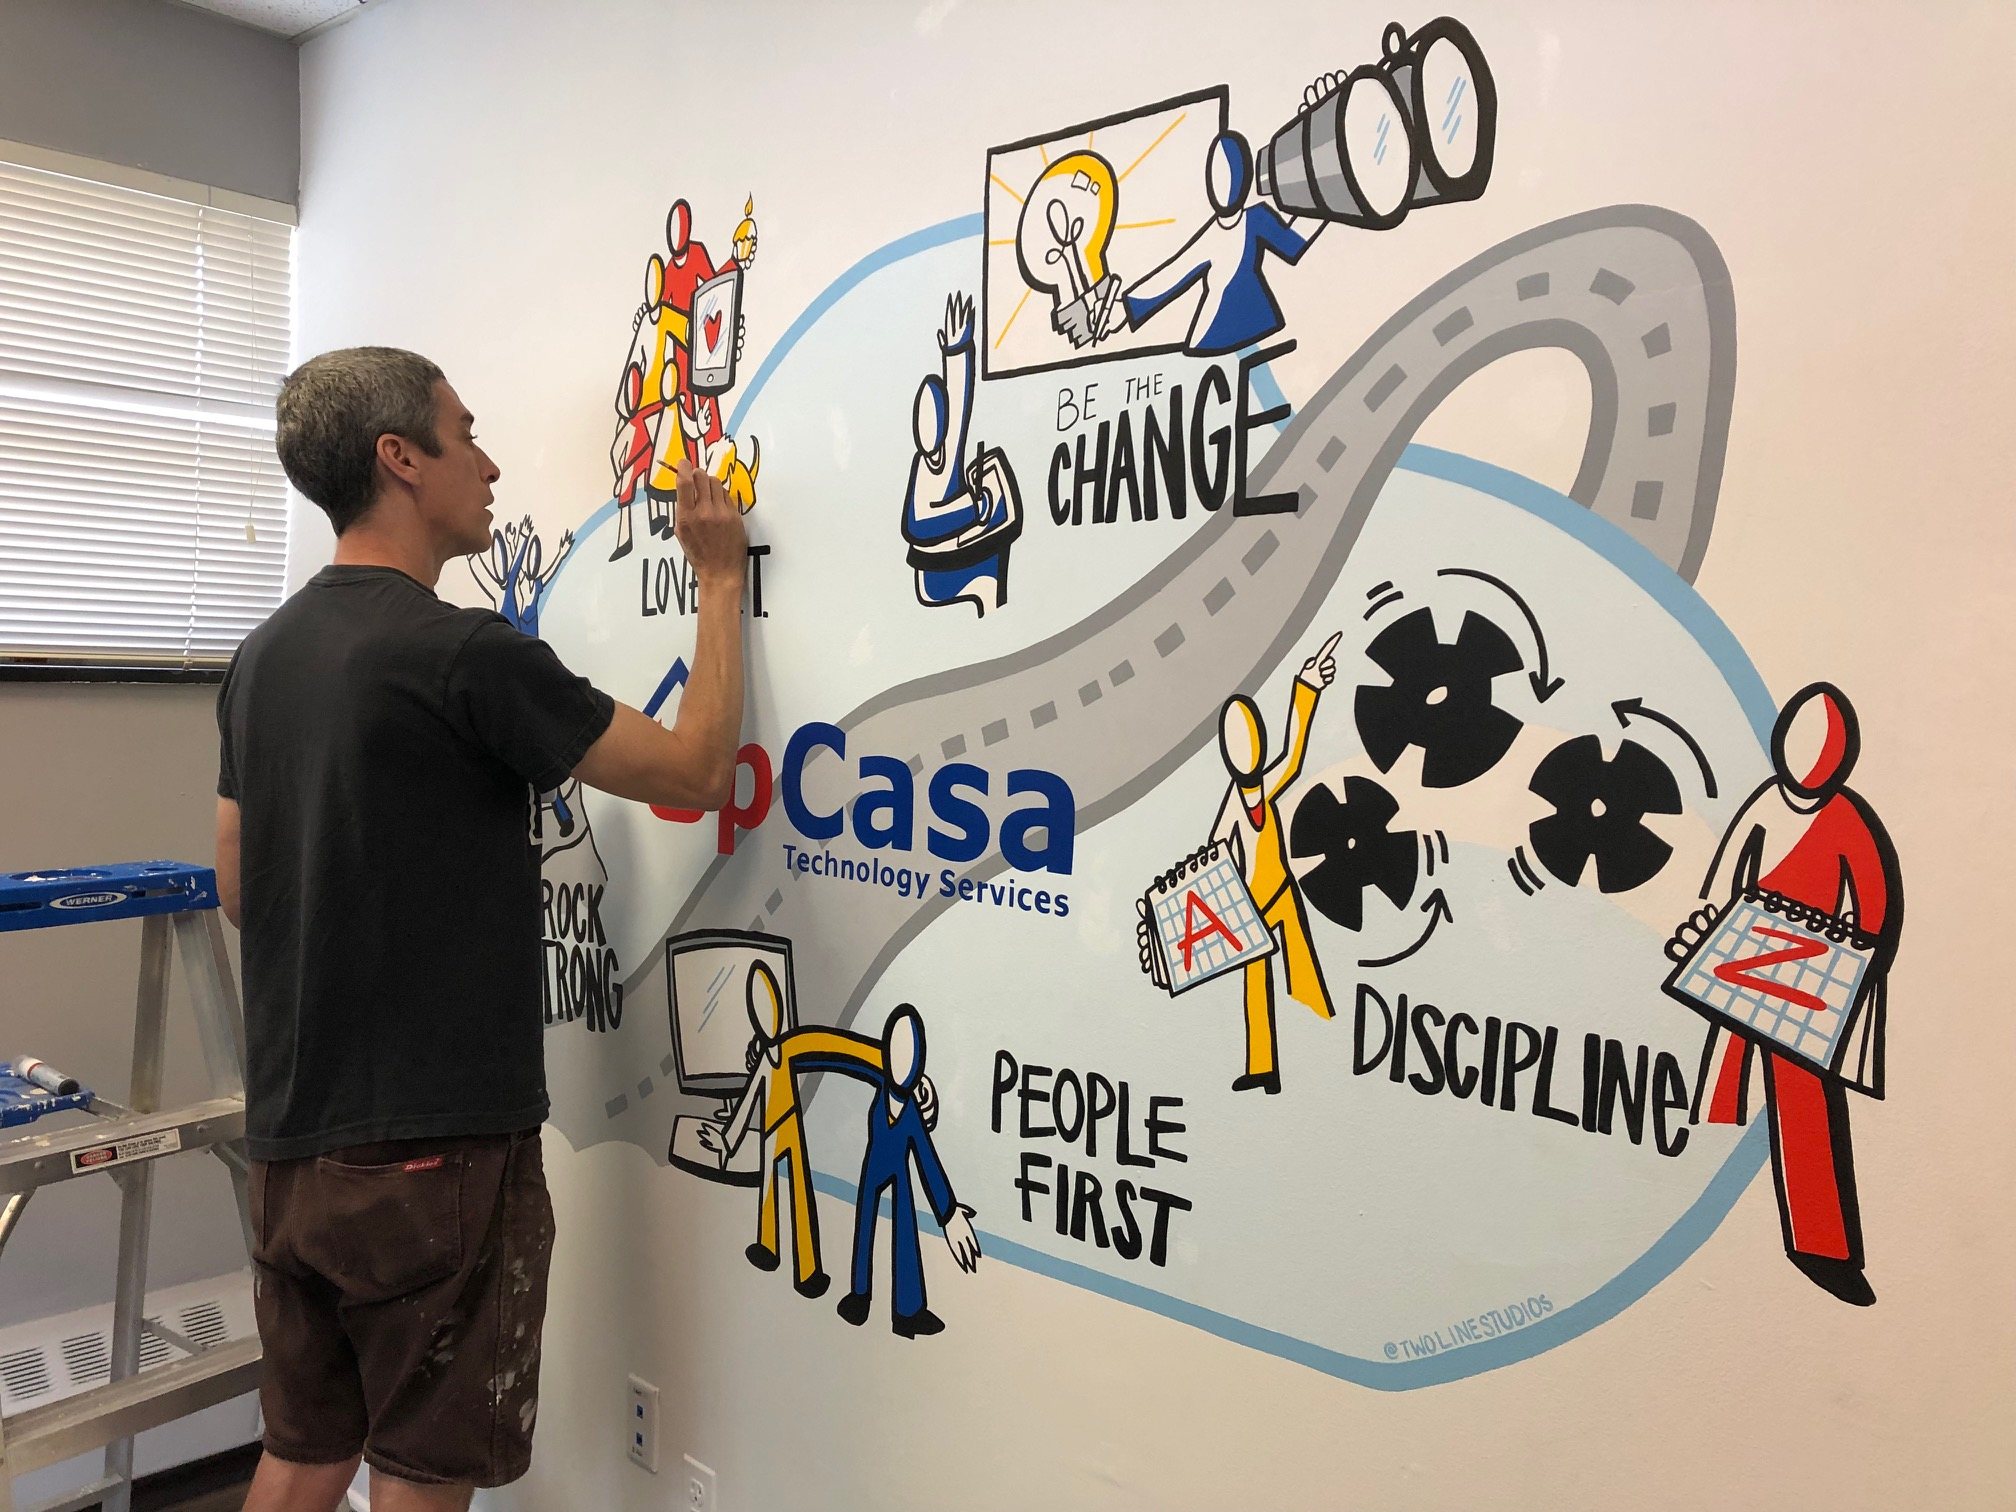 New mural at the offices of UpCasa Technology Services.  The piece is a collaboration with Heather Willems of Two Line Studios, who captured the essence of UpCasa's company culture in her illustration. I was fortunate enough to paint the piece at their offices in Englewood, NJ. Thanks to everyone involved!!  Discipline, People First, Rock Strong, Love I.T... Be The Change.